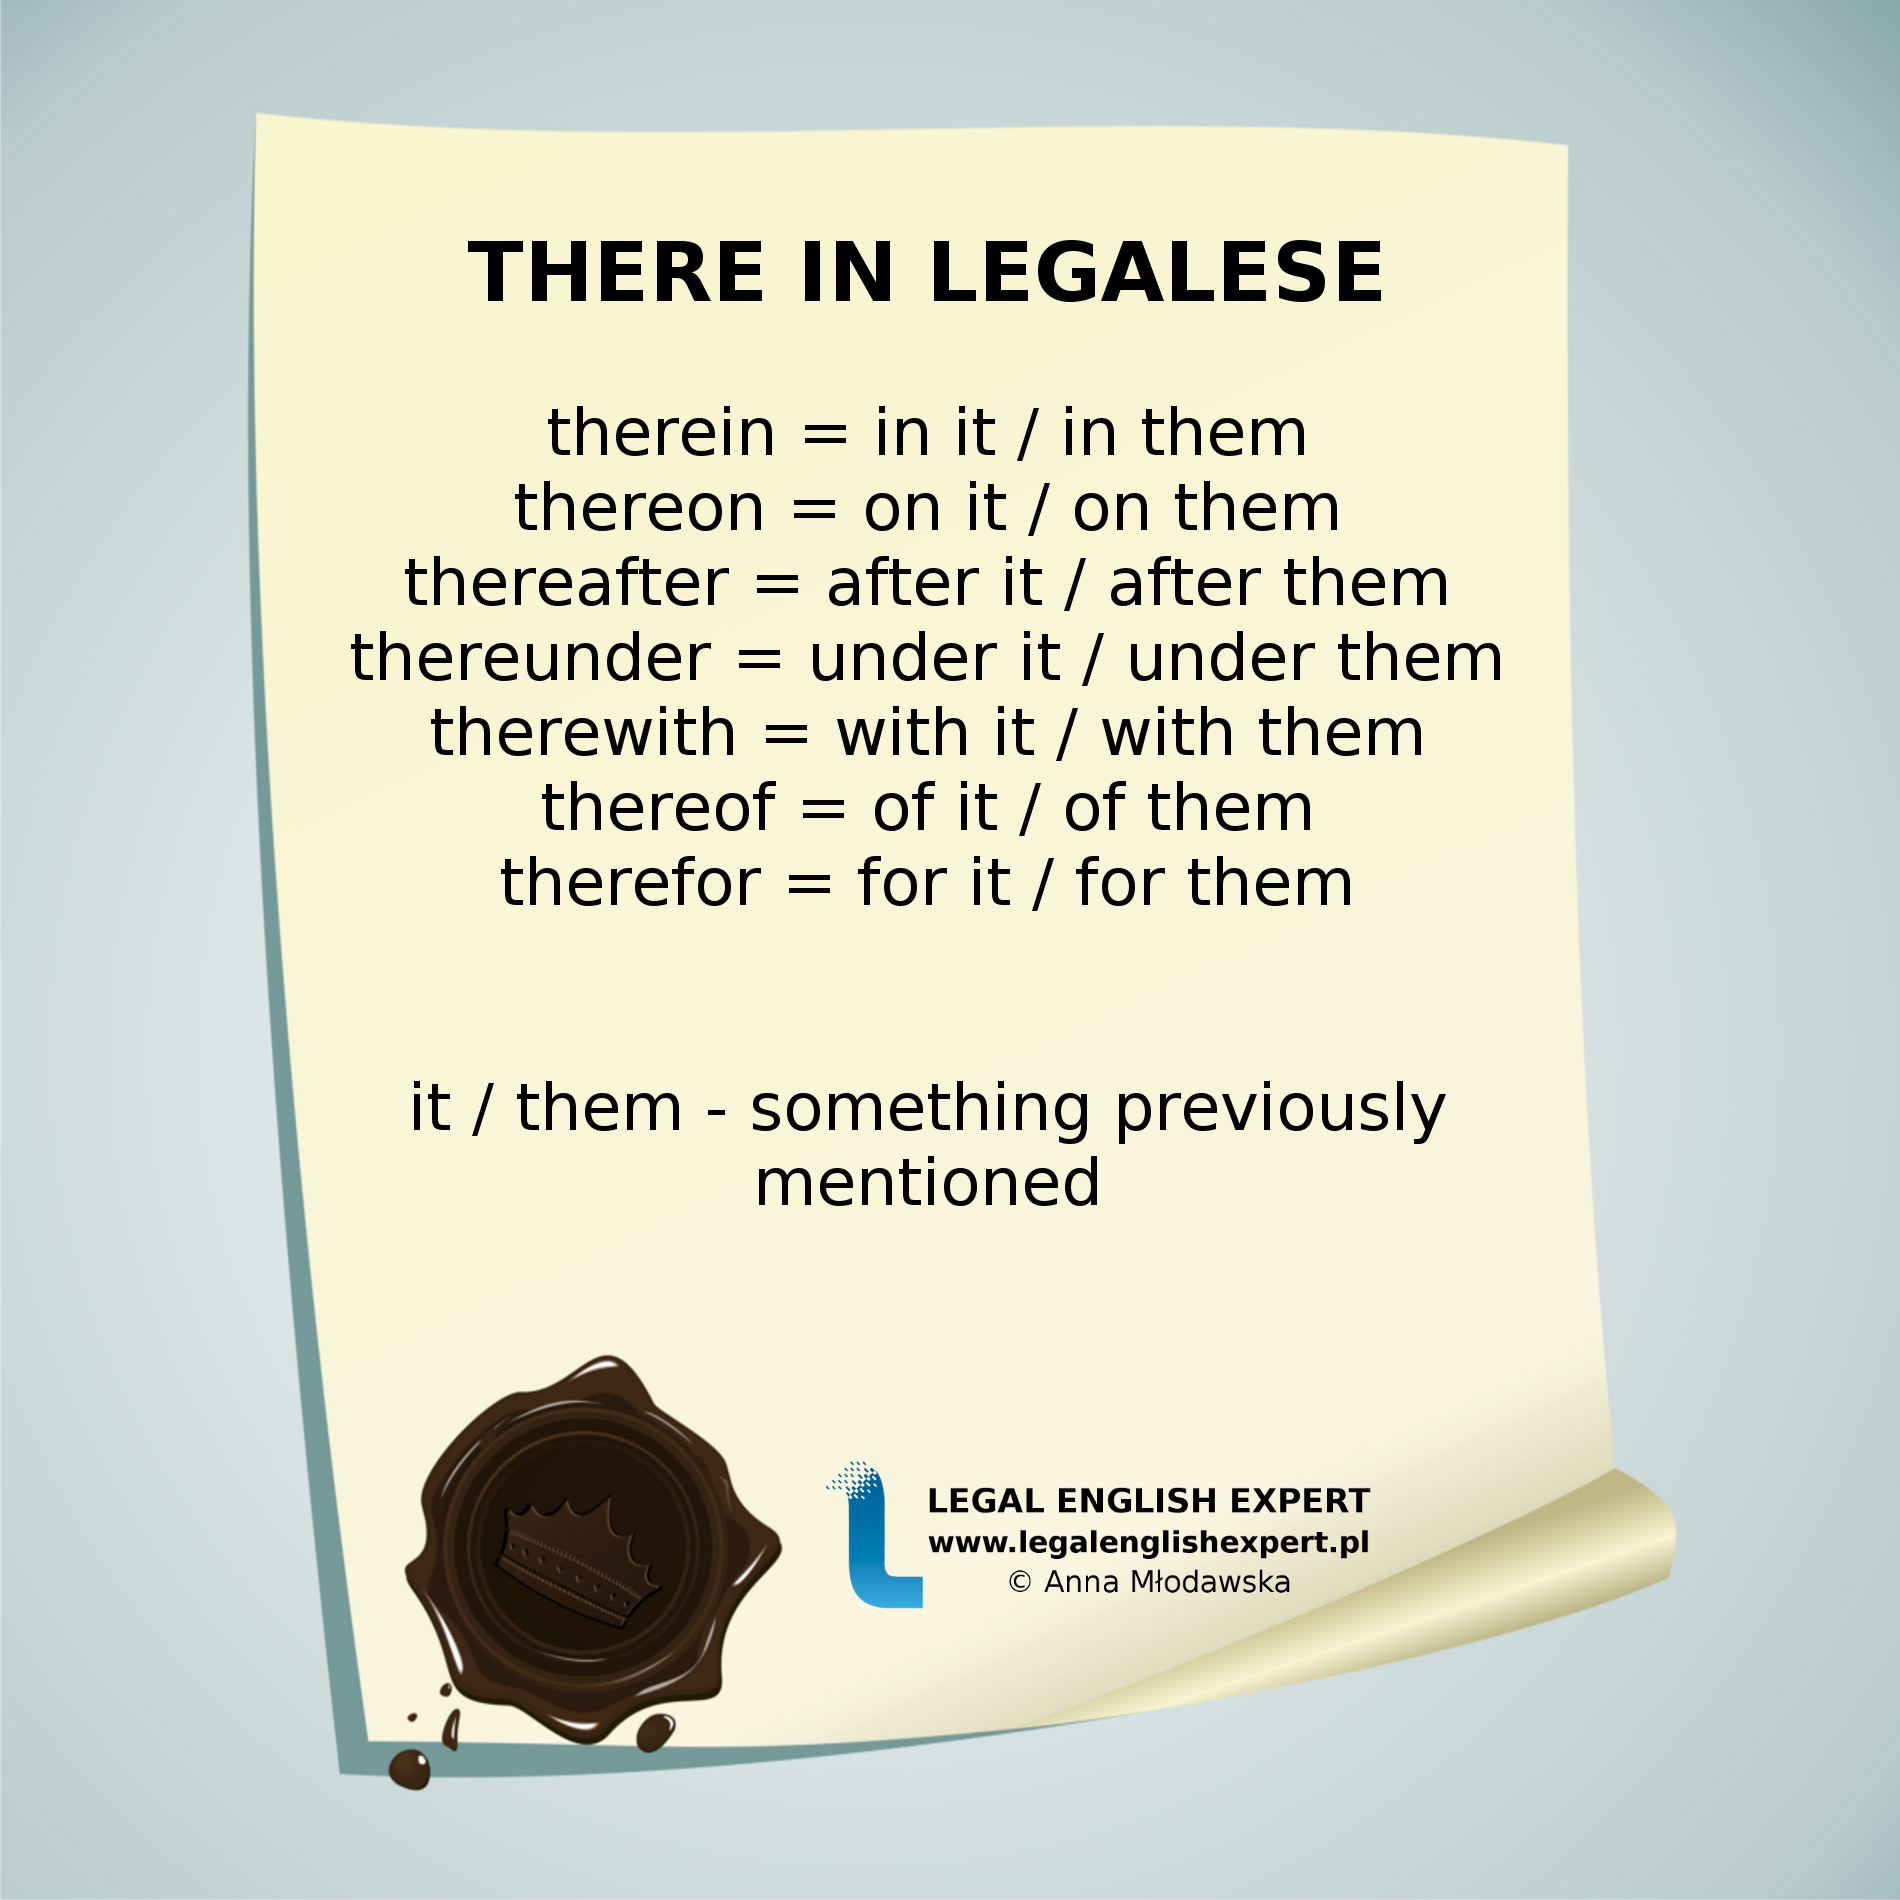 THERE - Legal English Expert